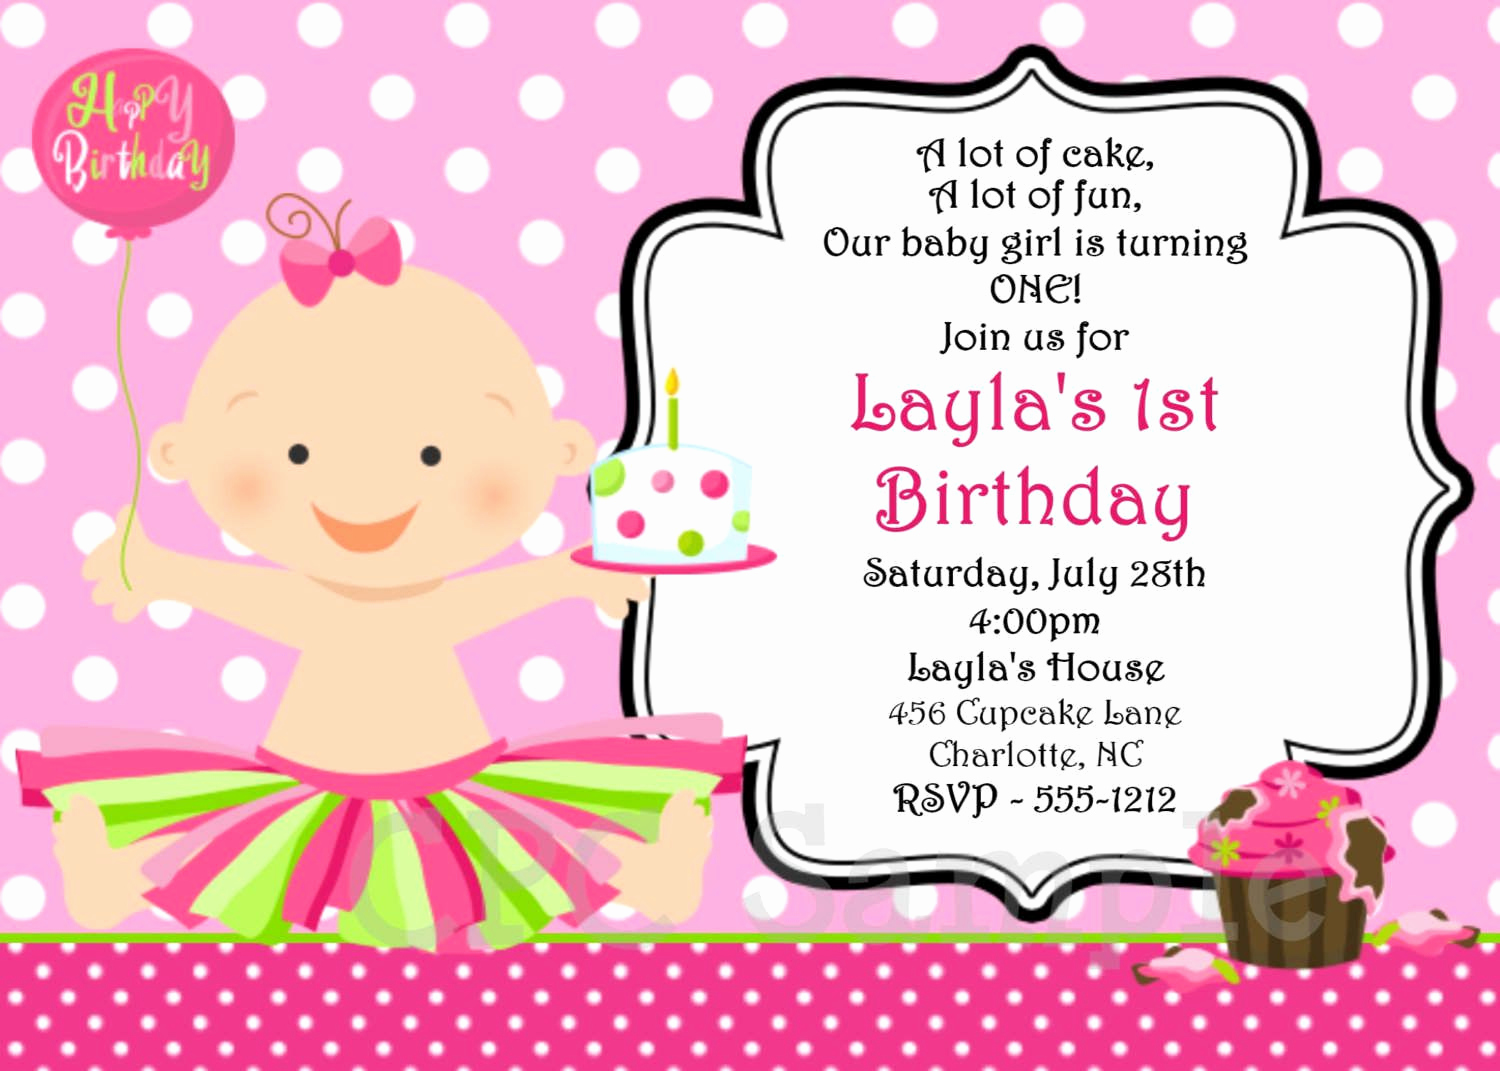 Birthday Invitation Card Sample Inspirational Birthday Invite Samples Birthday Lunch Invitation Email